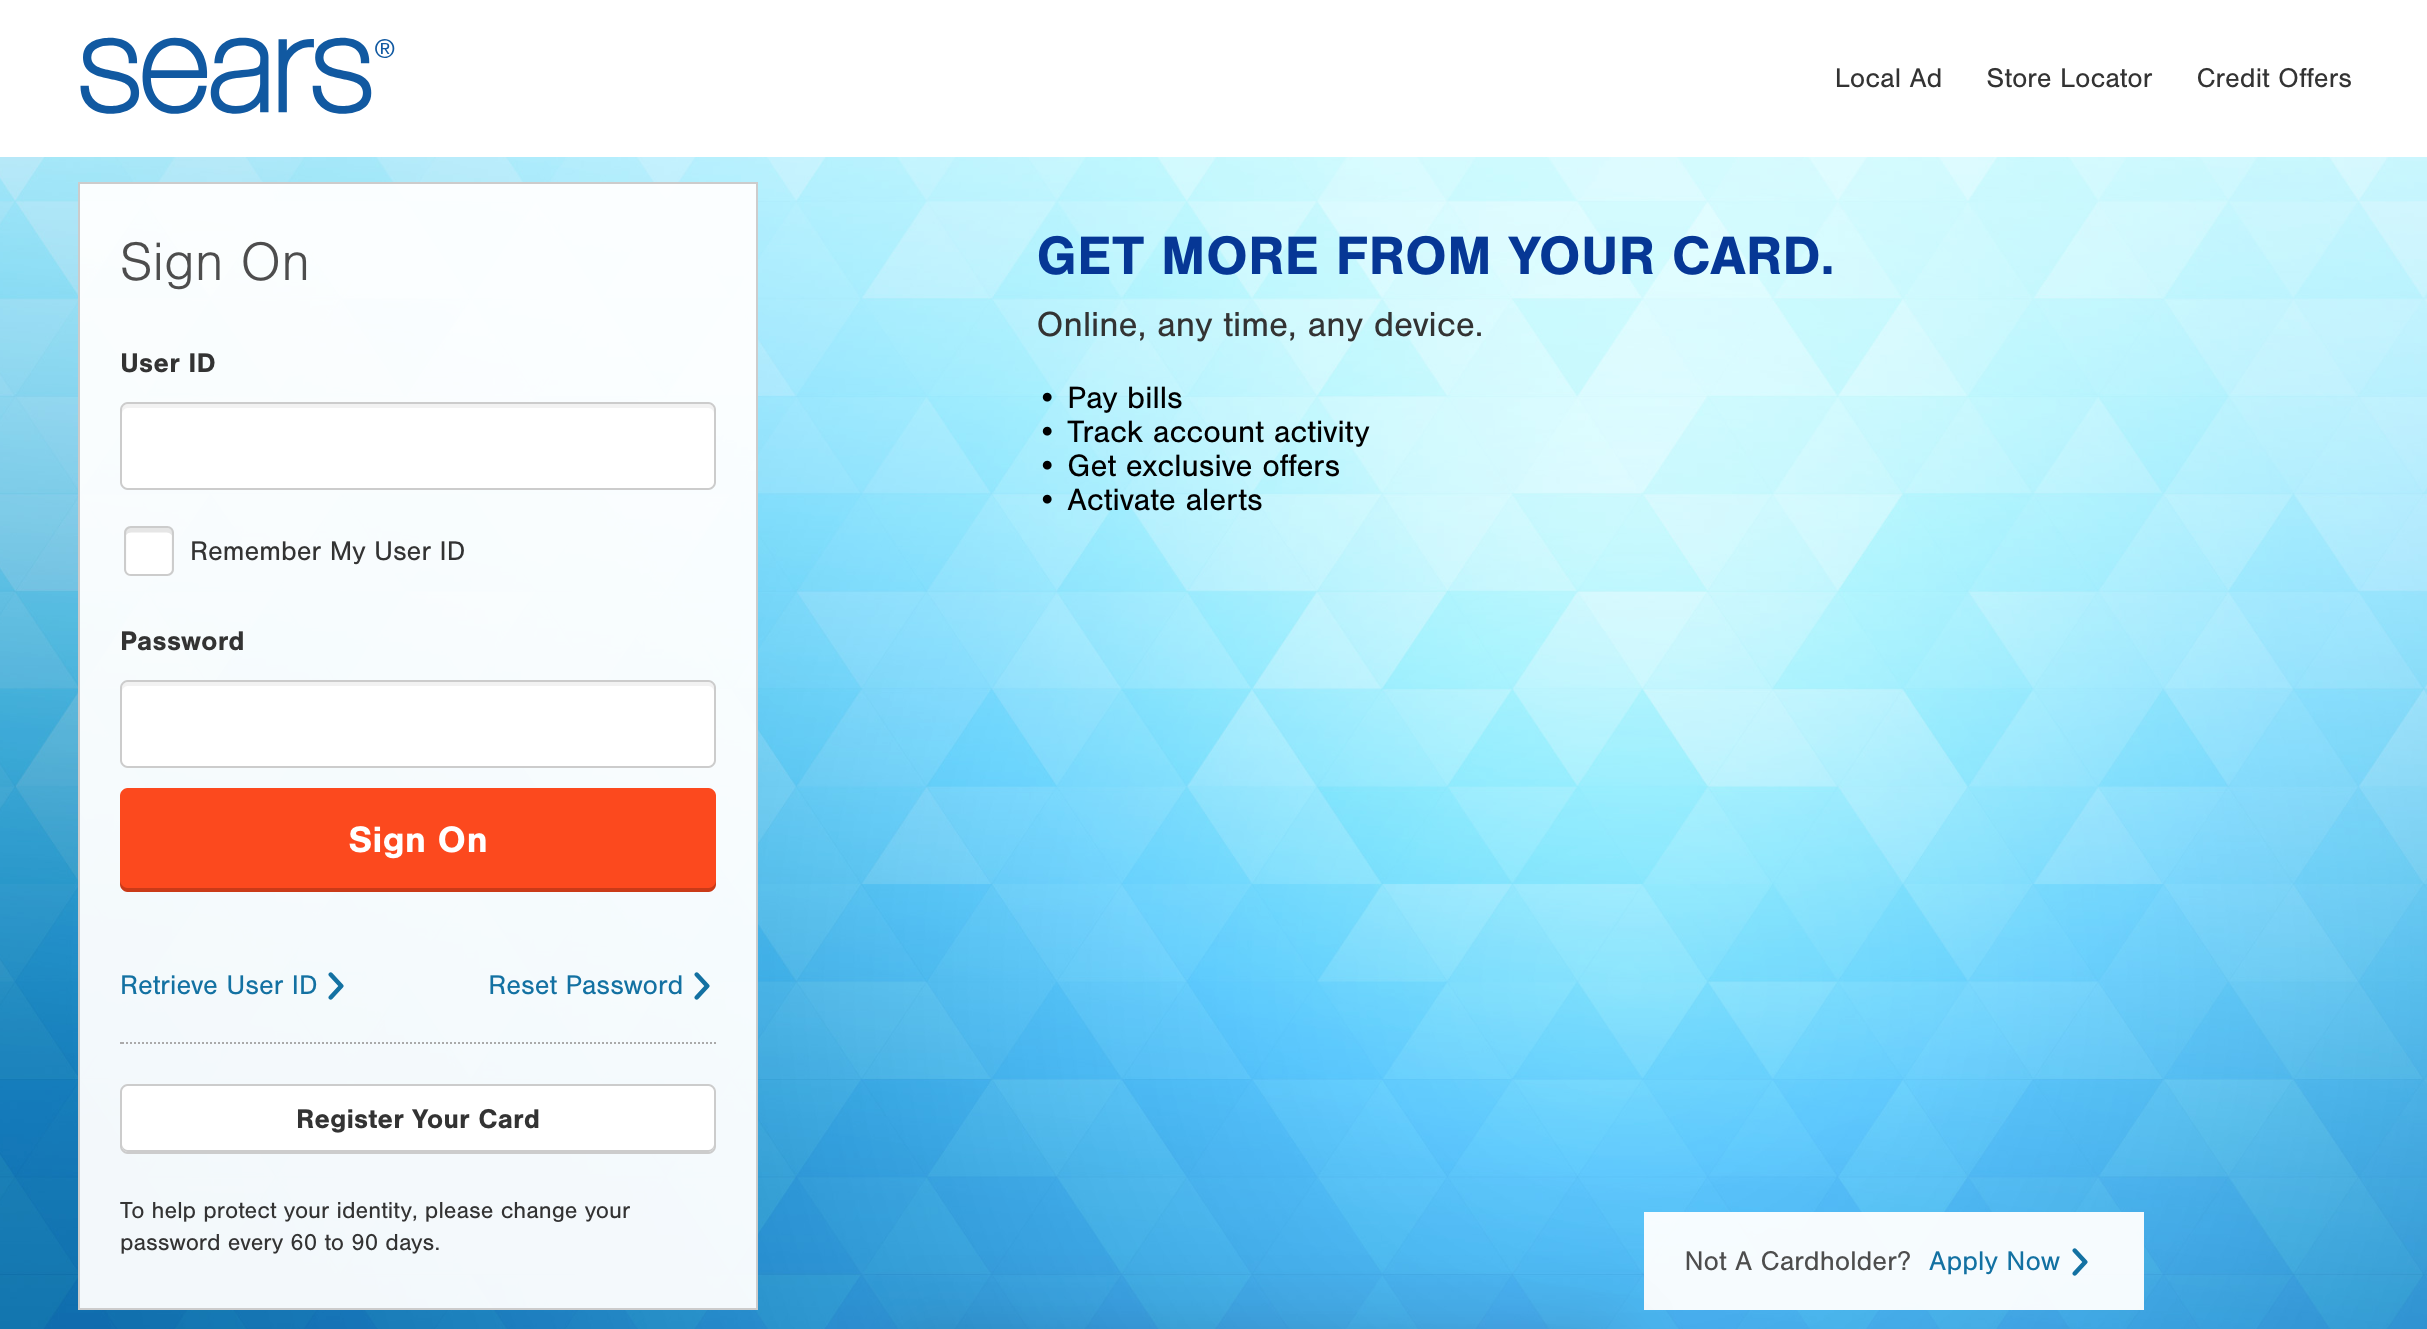 Sears Credit Cards & Shop Your Way Rewards - Are They Worth It?